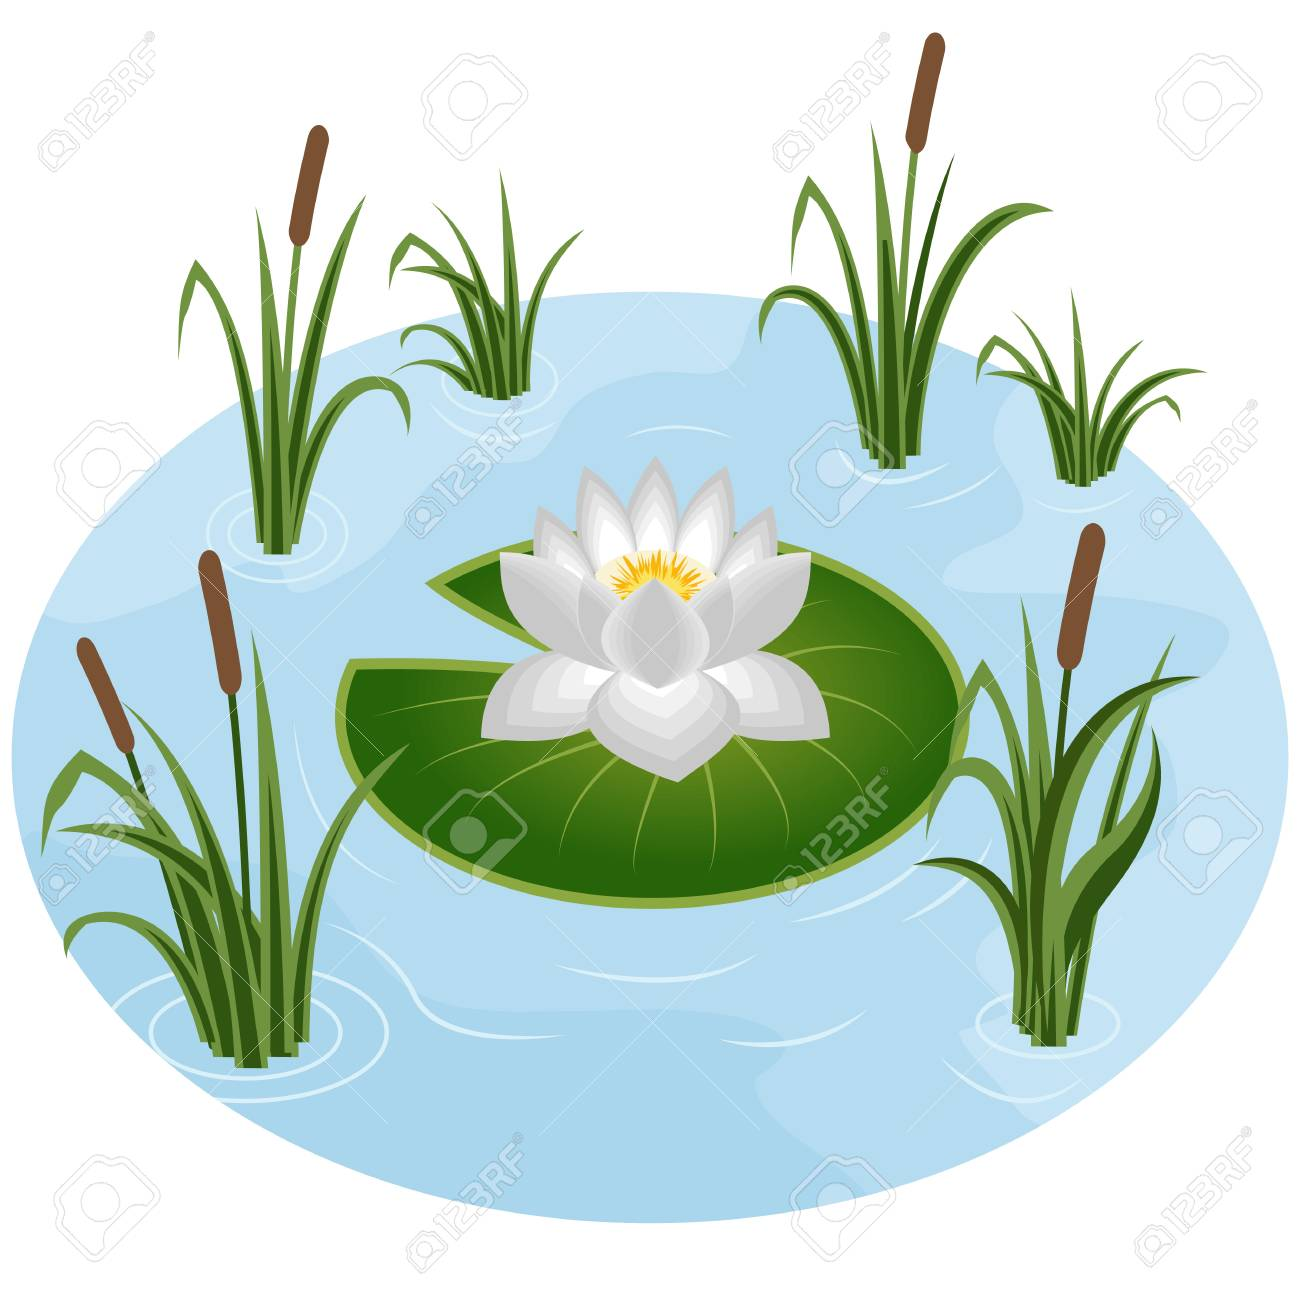 white water lily in pond surrounded by reeds in grass vector rh 123rf com grass vector artwork